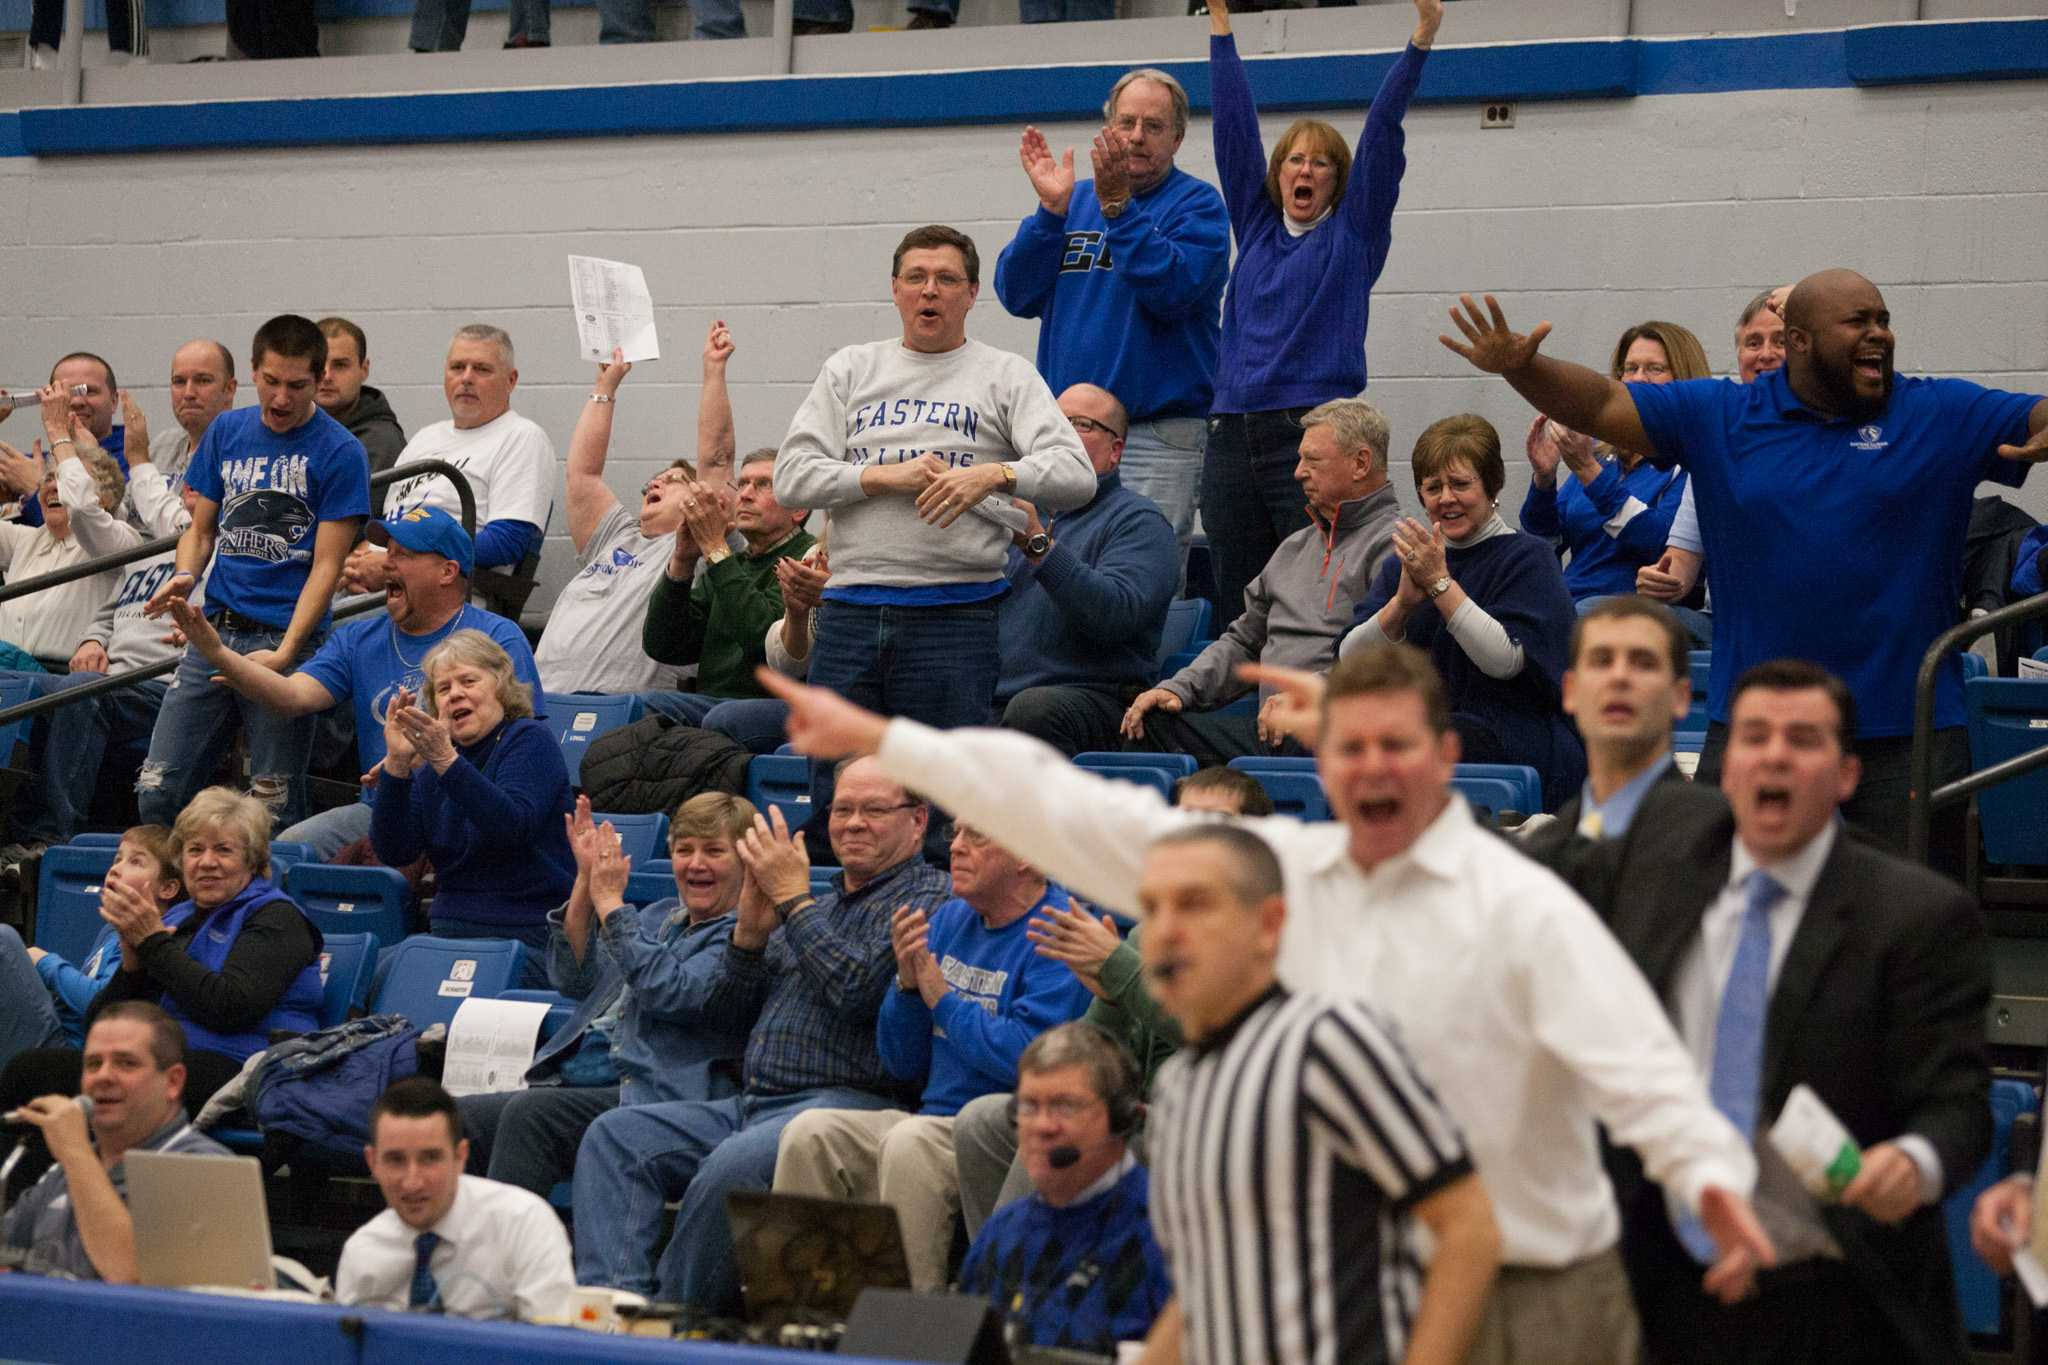 Celebrations abound as the Panthers defeat the Northern Kentucky Norse 79-73 in overtime on Saturday in Lantz Arena.